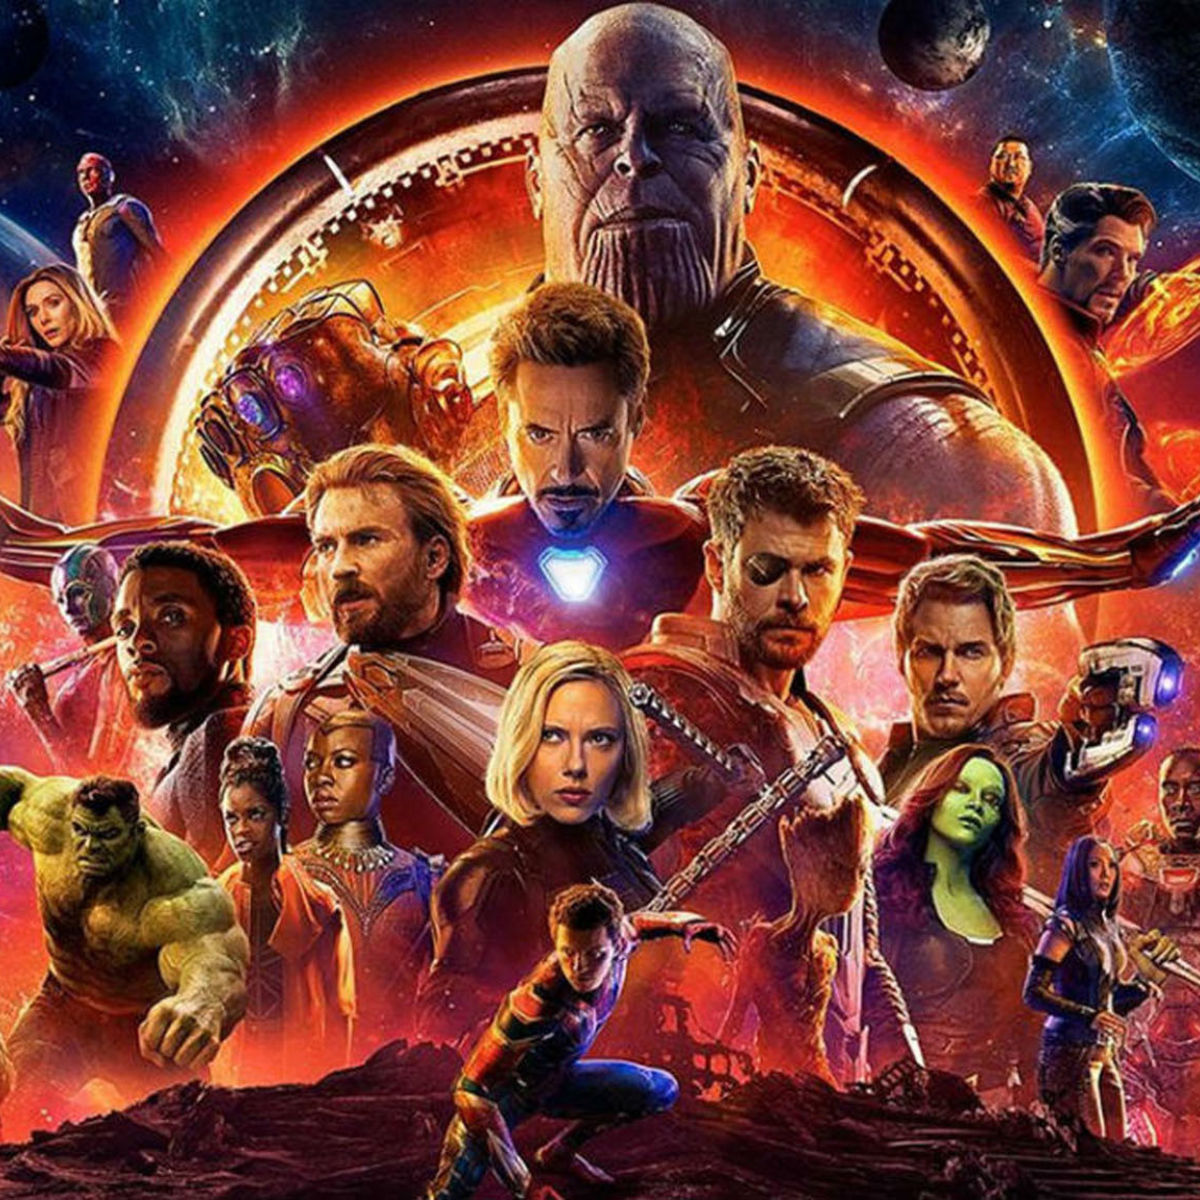 Discussion on this topic: Avengers: Infinity War will be in theaters , avengers-infinity-war-will-be-in-theaters/